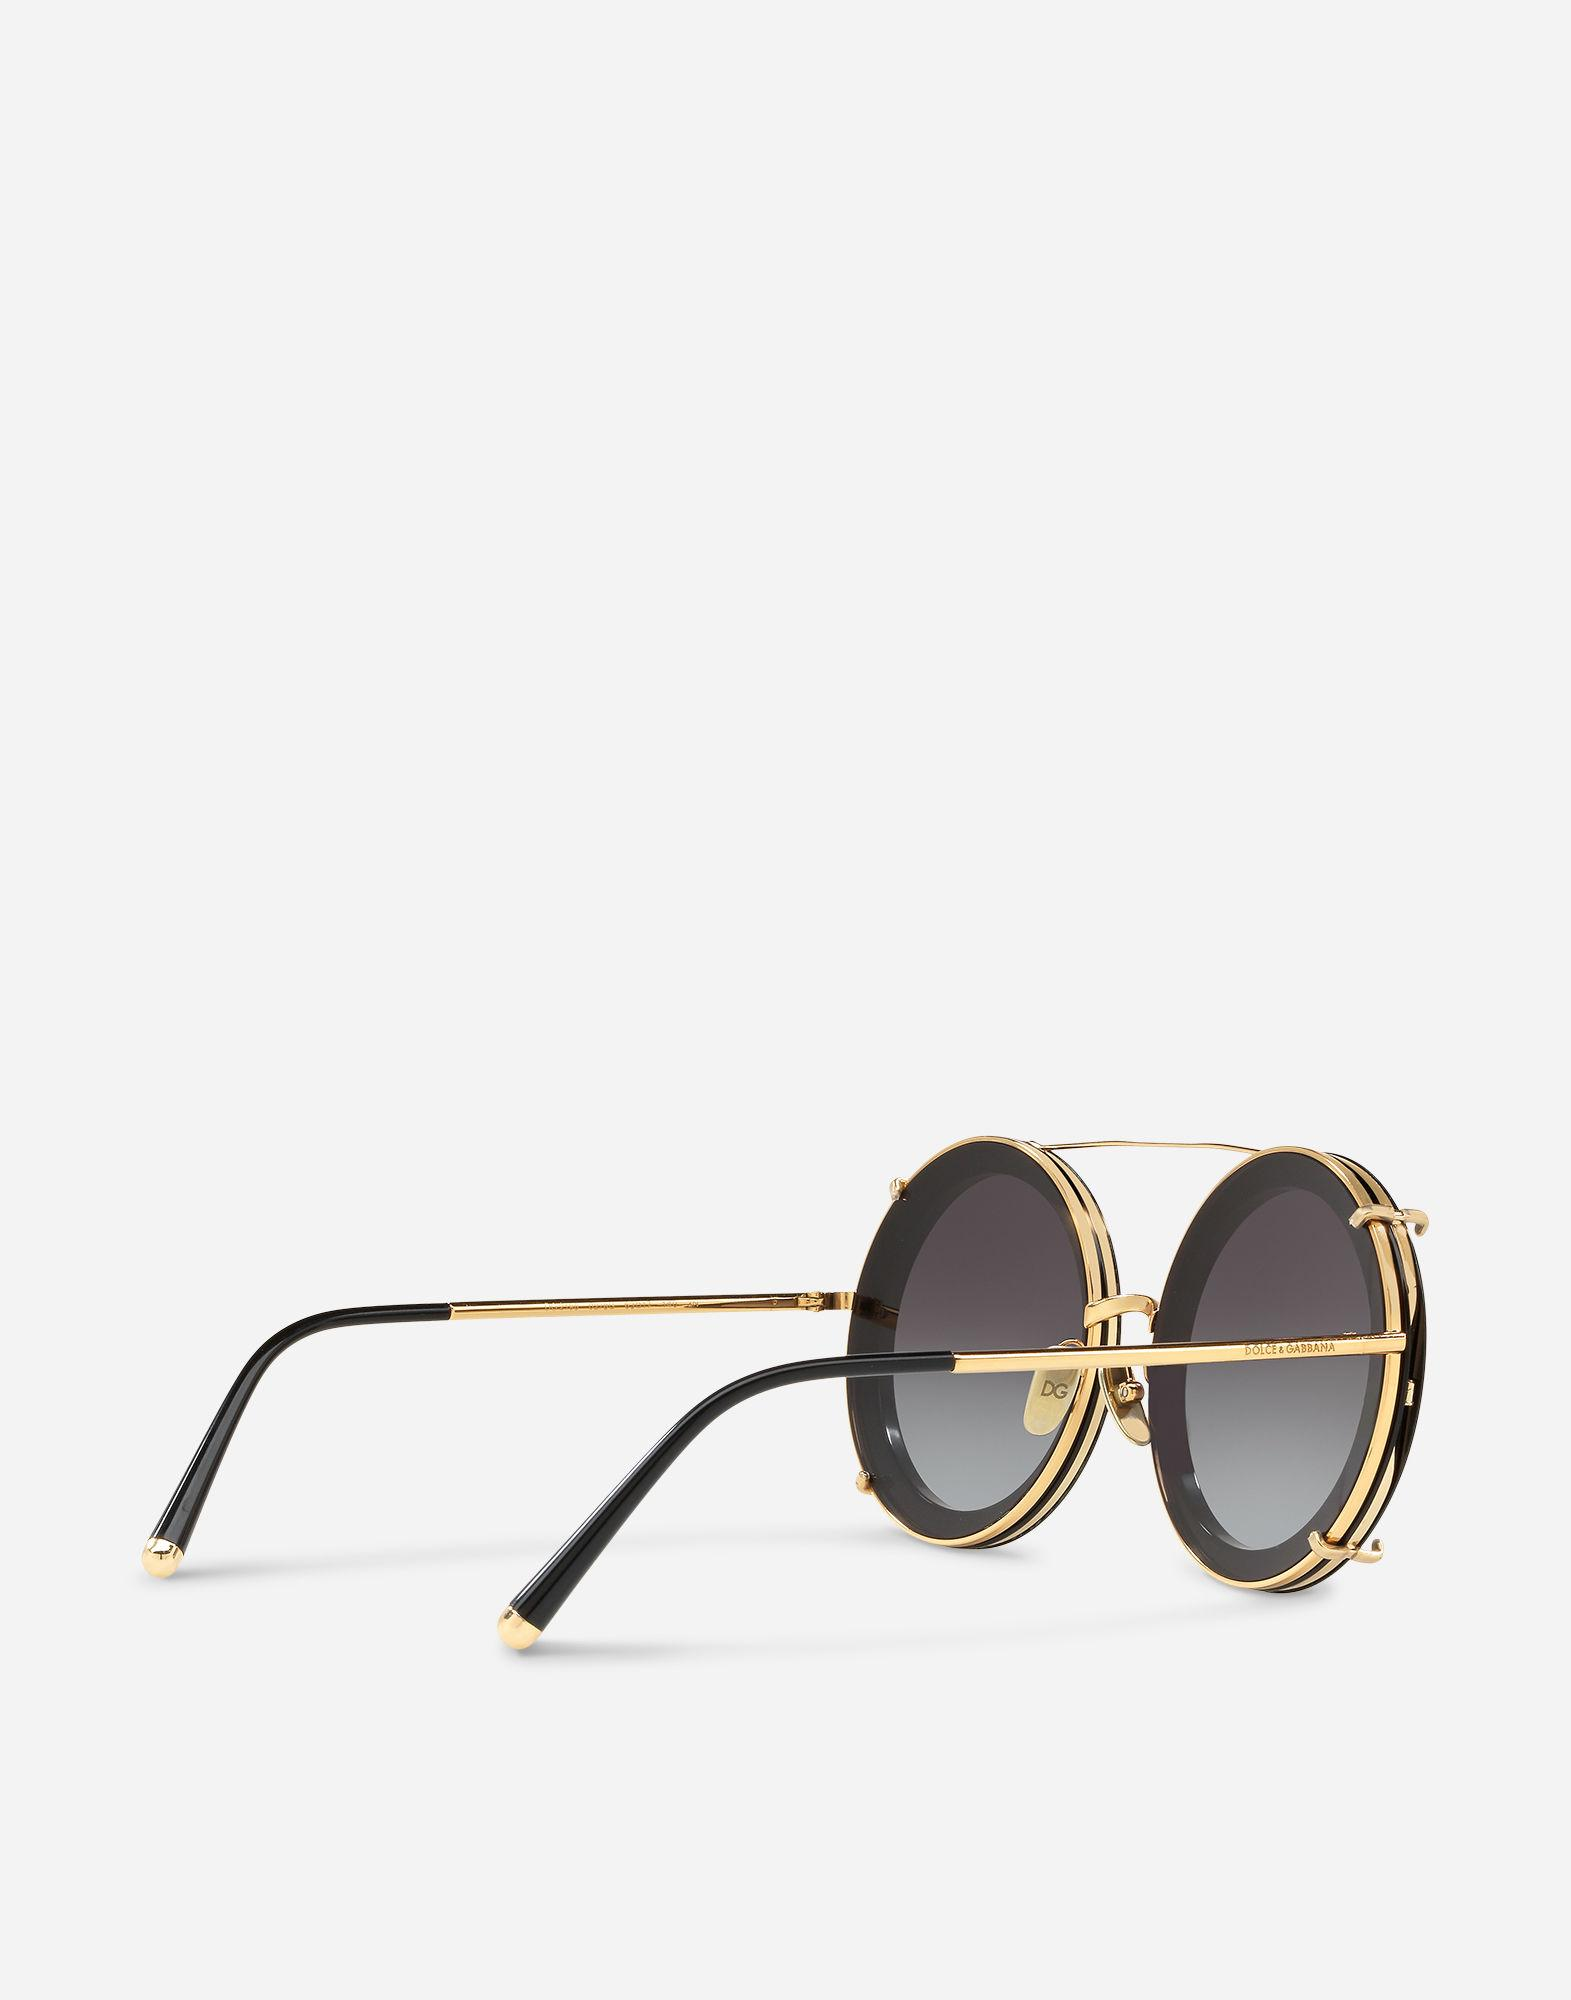 2d322281ede Dolce   Gabbana Round Clip-On Sunglasses In Gold Metal With Graffiti Print